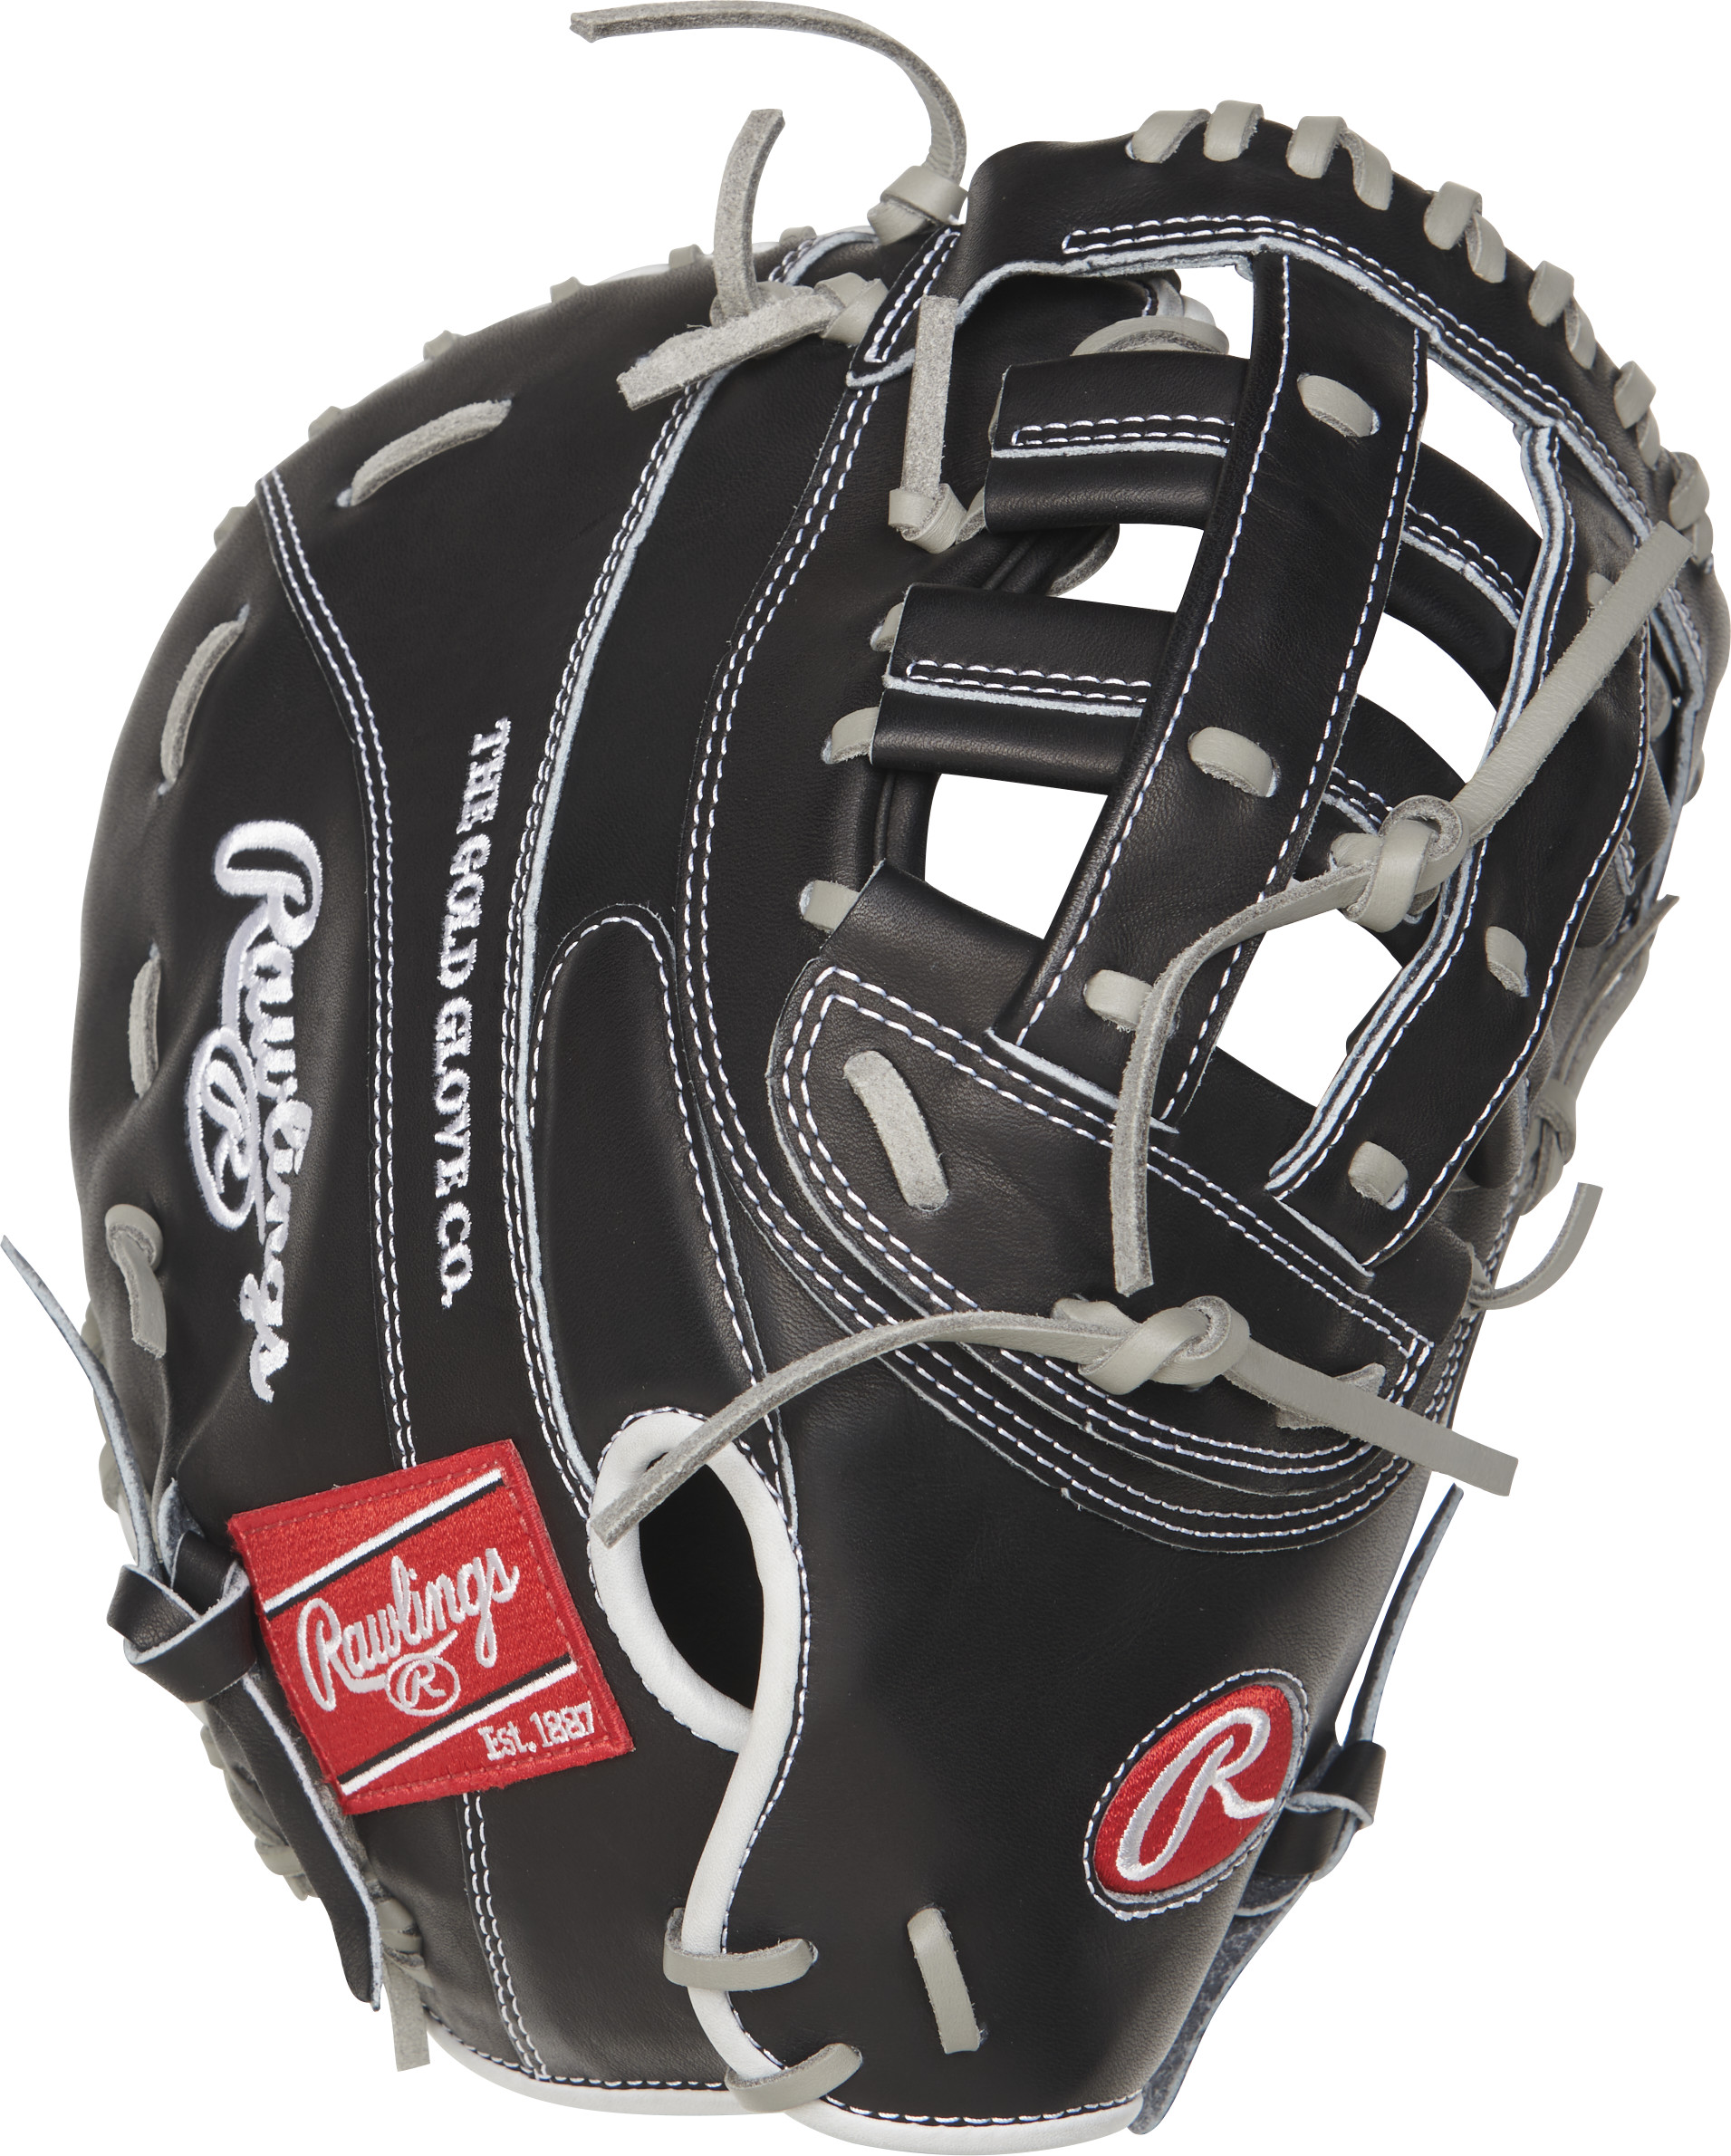 http://www.bestbatdeals.com/images/gloves/rawlings/PROTM8SB-17BG-2.jpg